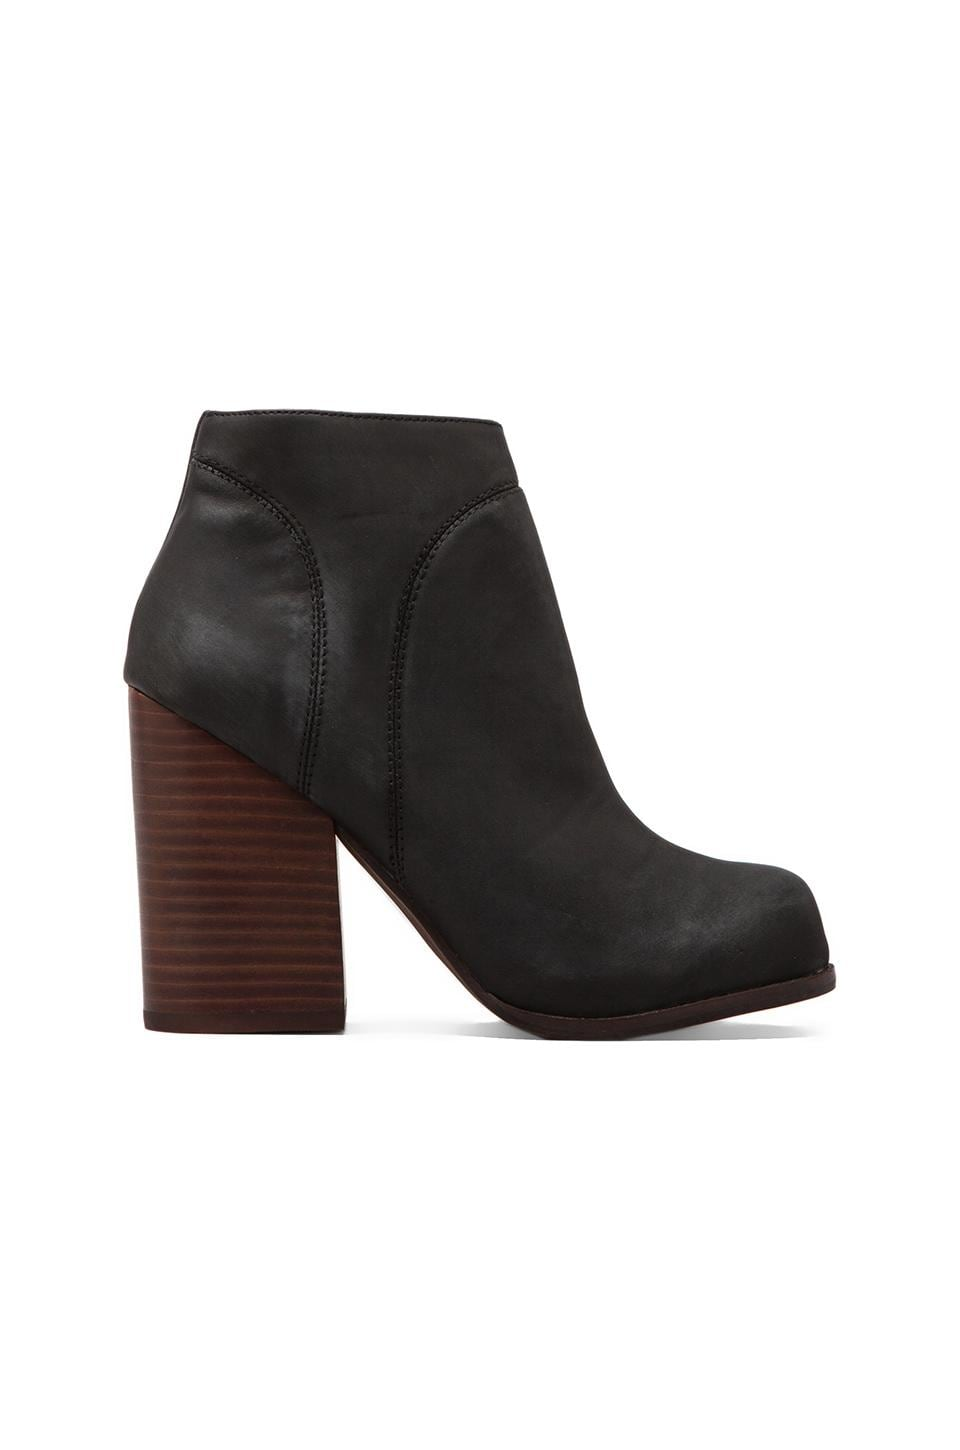 Jeffrey Campbell Hanger Leather Boot in Black/Brown Heel